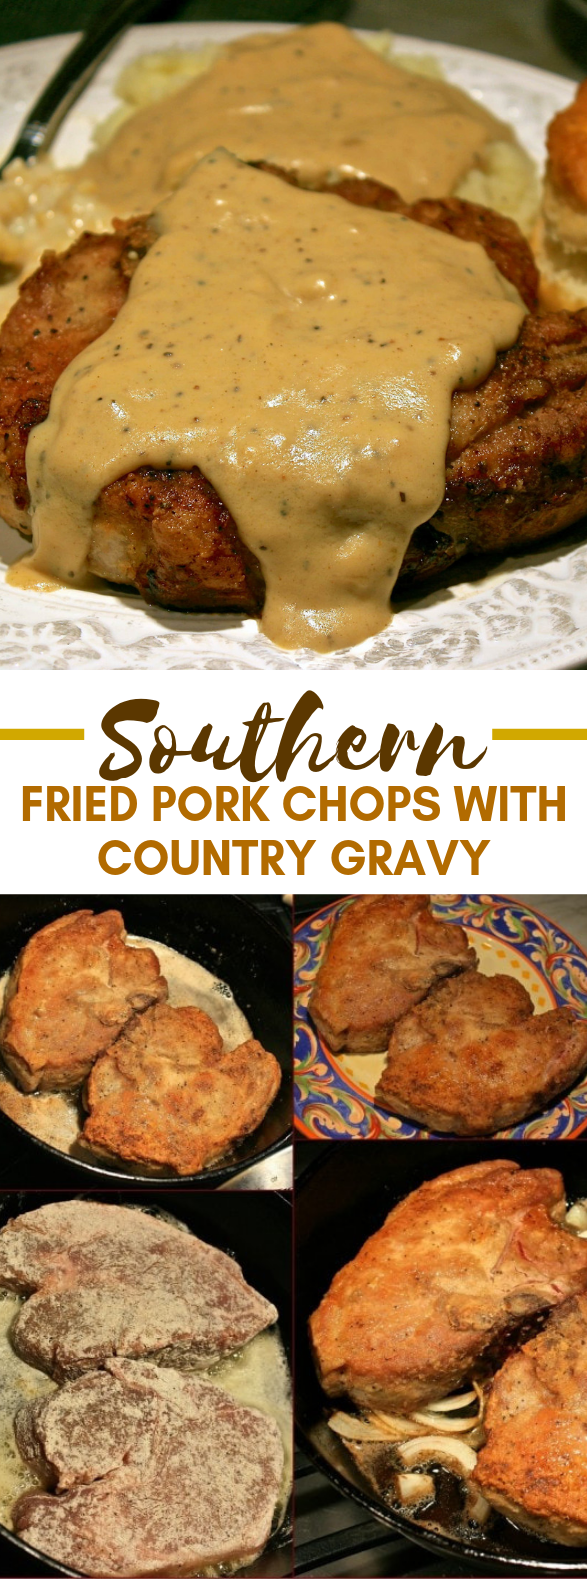 Southern Fried Pork Chops with Country Gravy #dinner #comfortfood